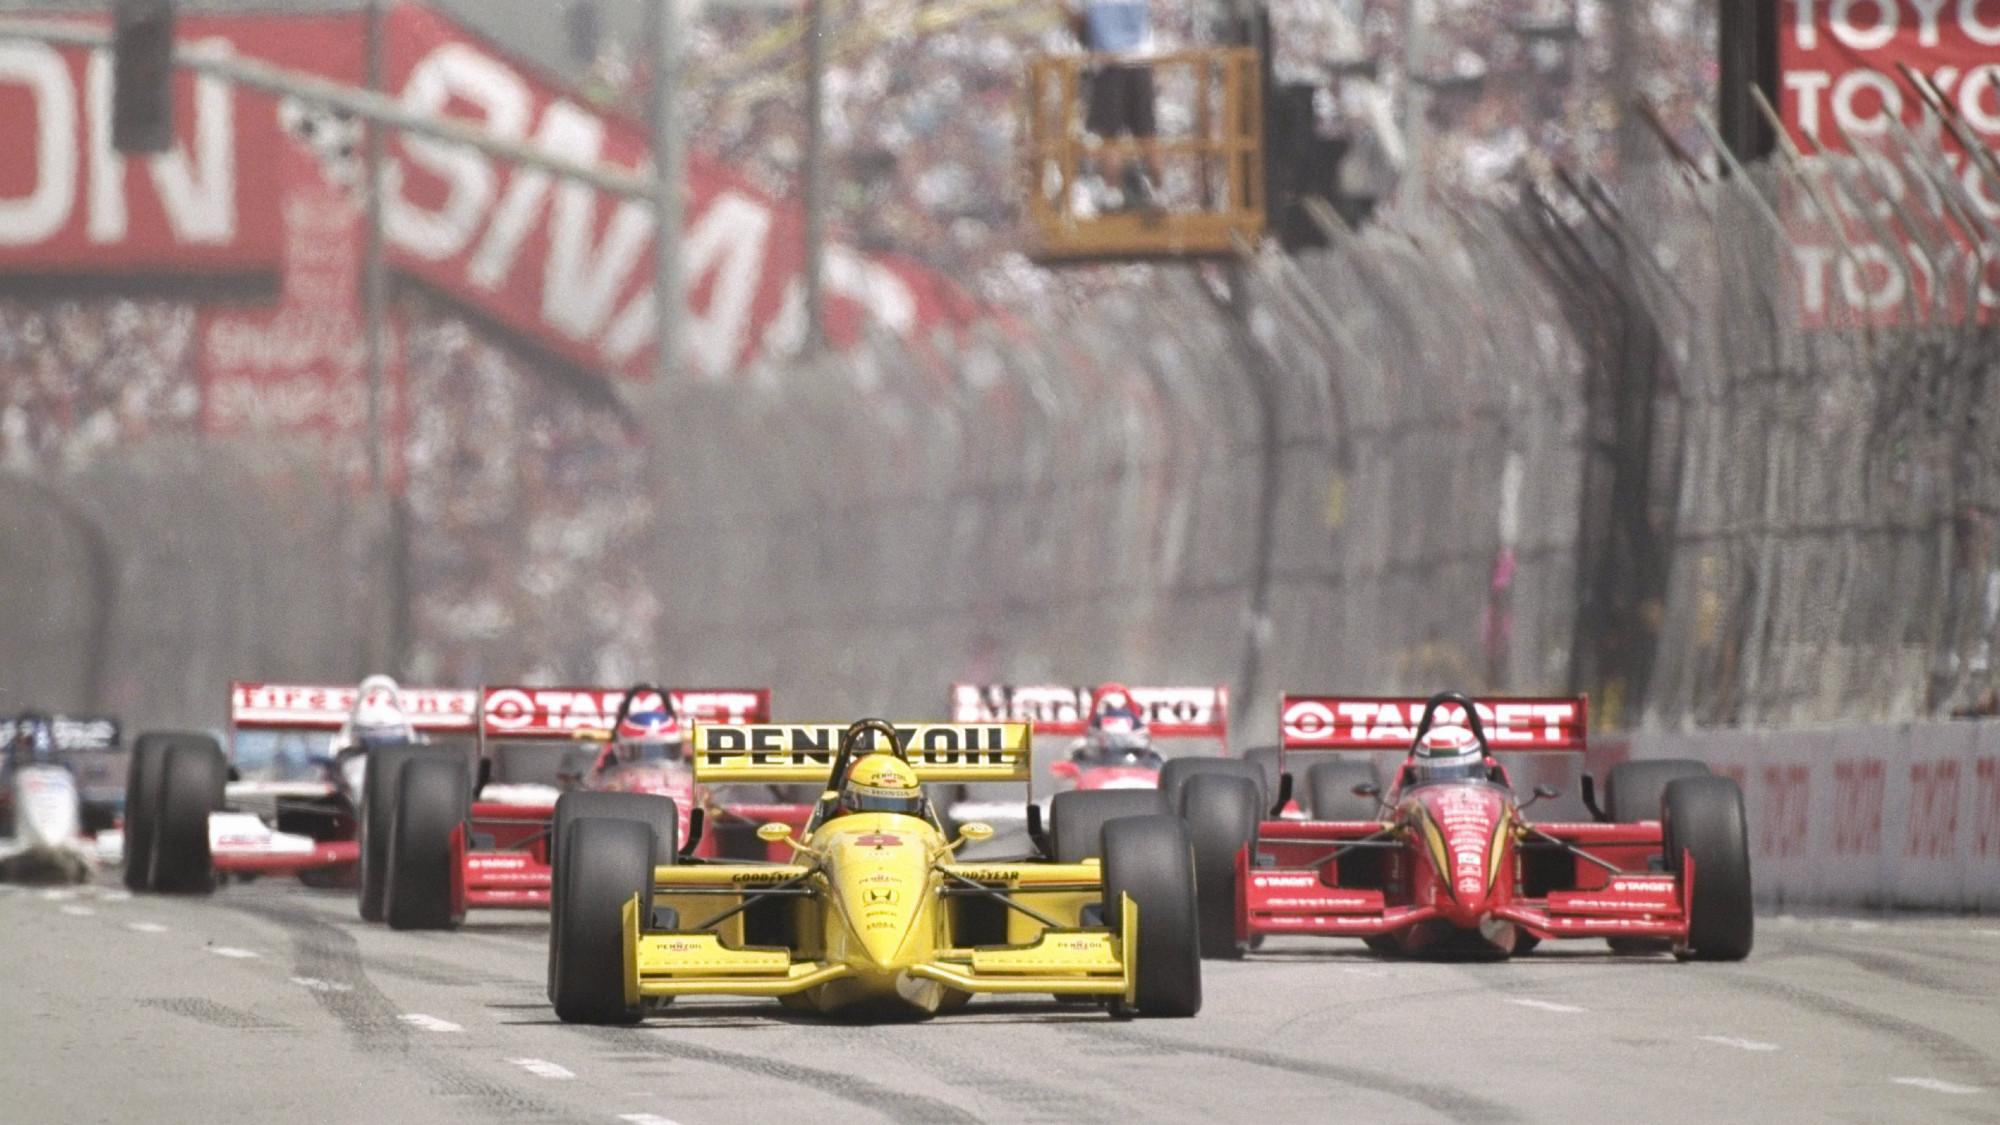 Remembering the split that nearly sunk Indycar racing